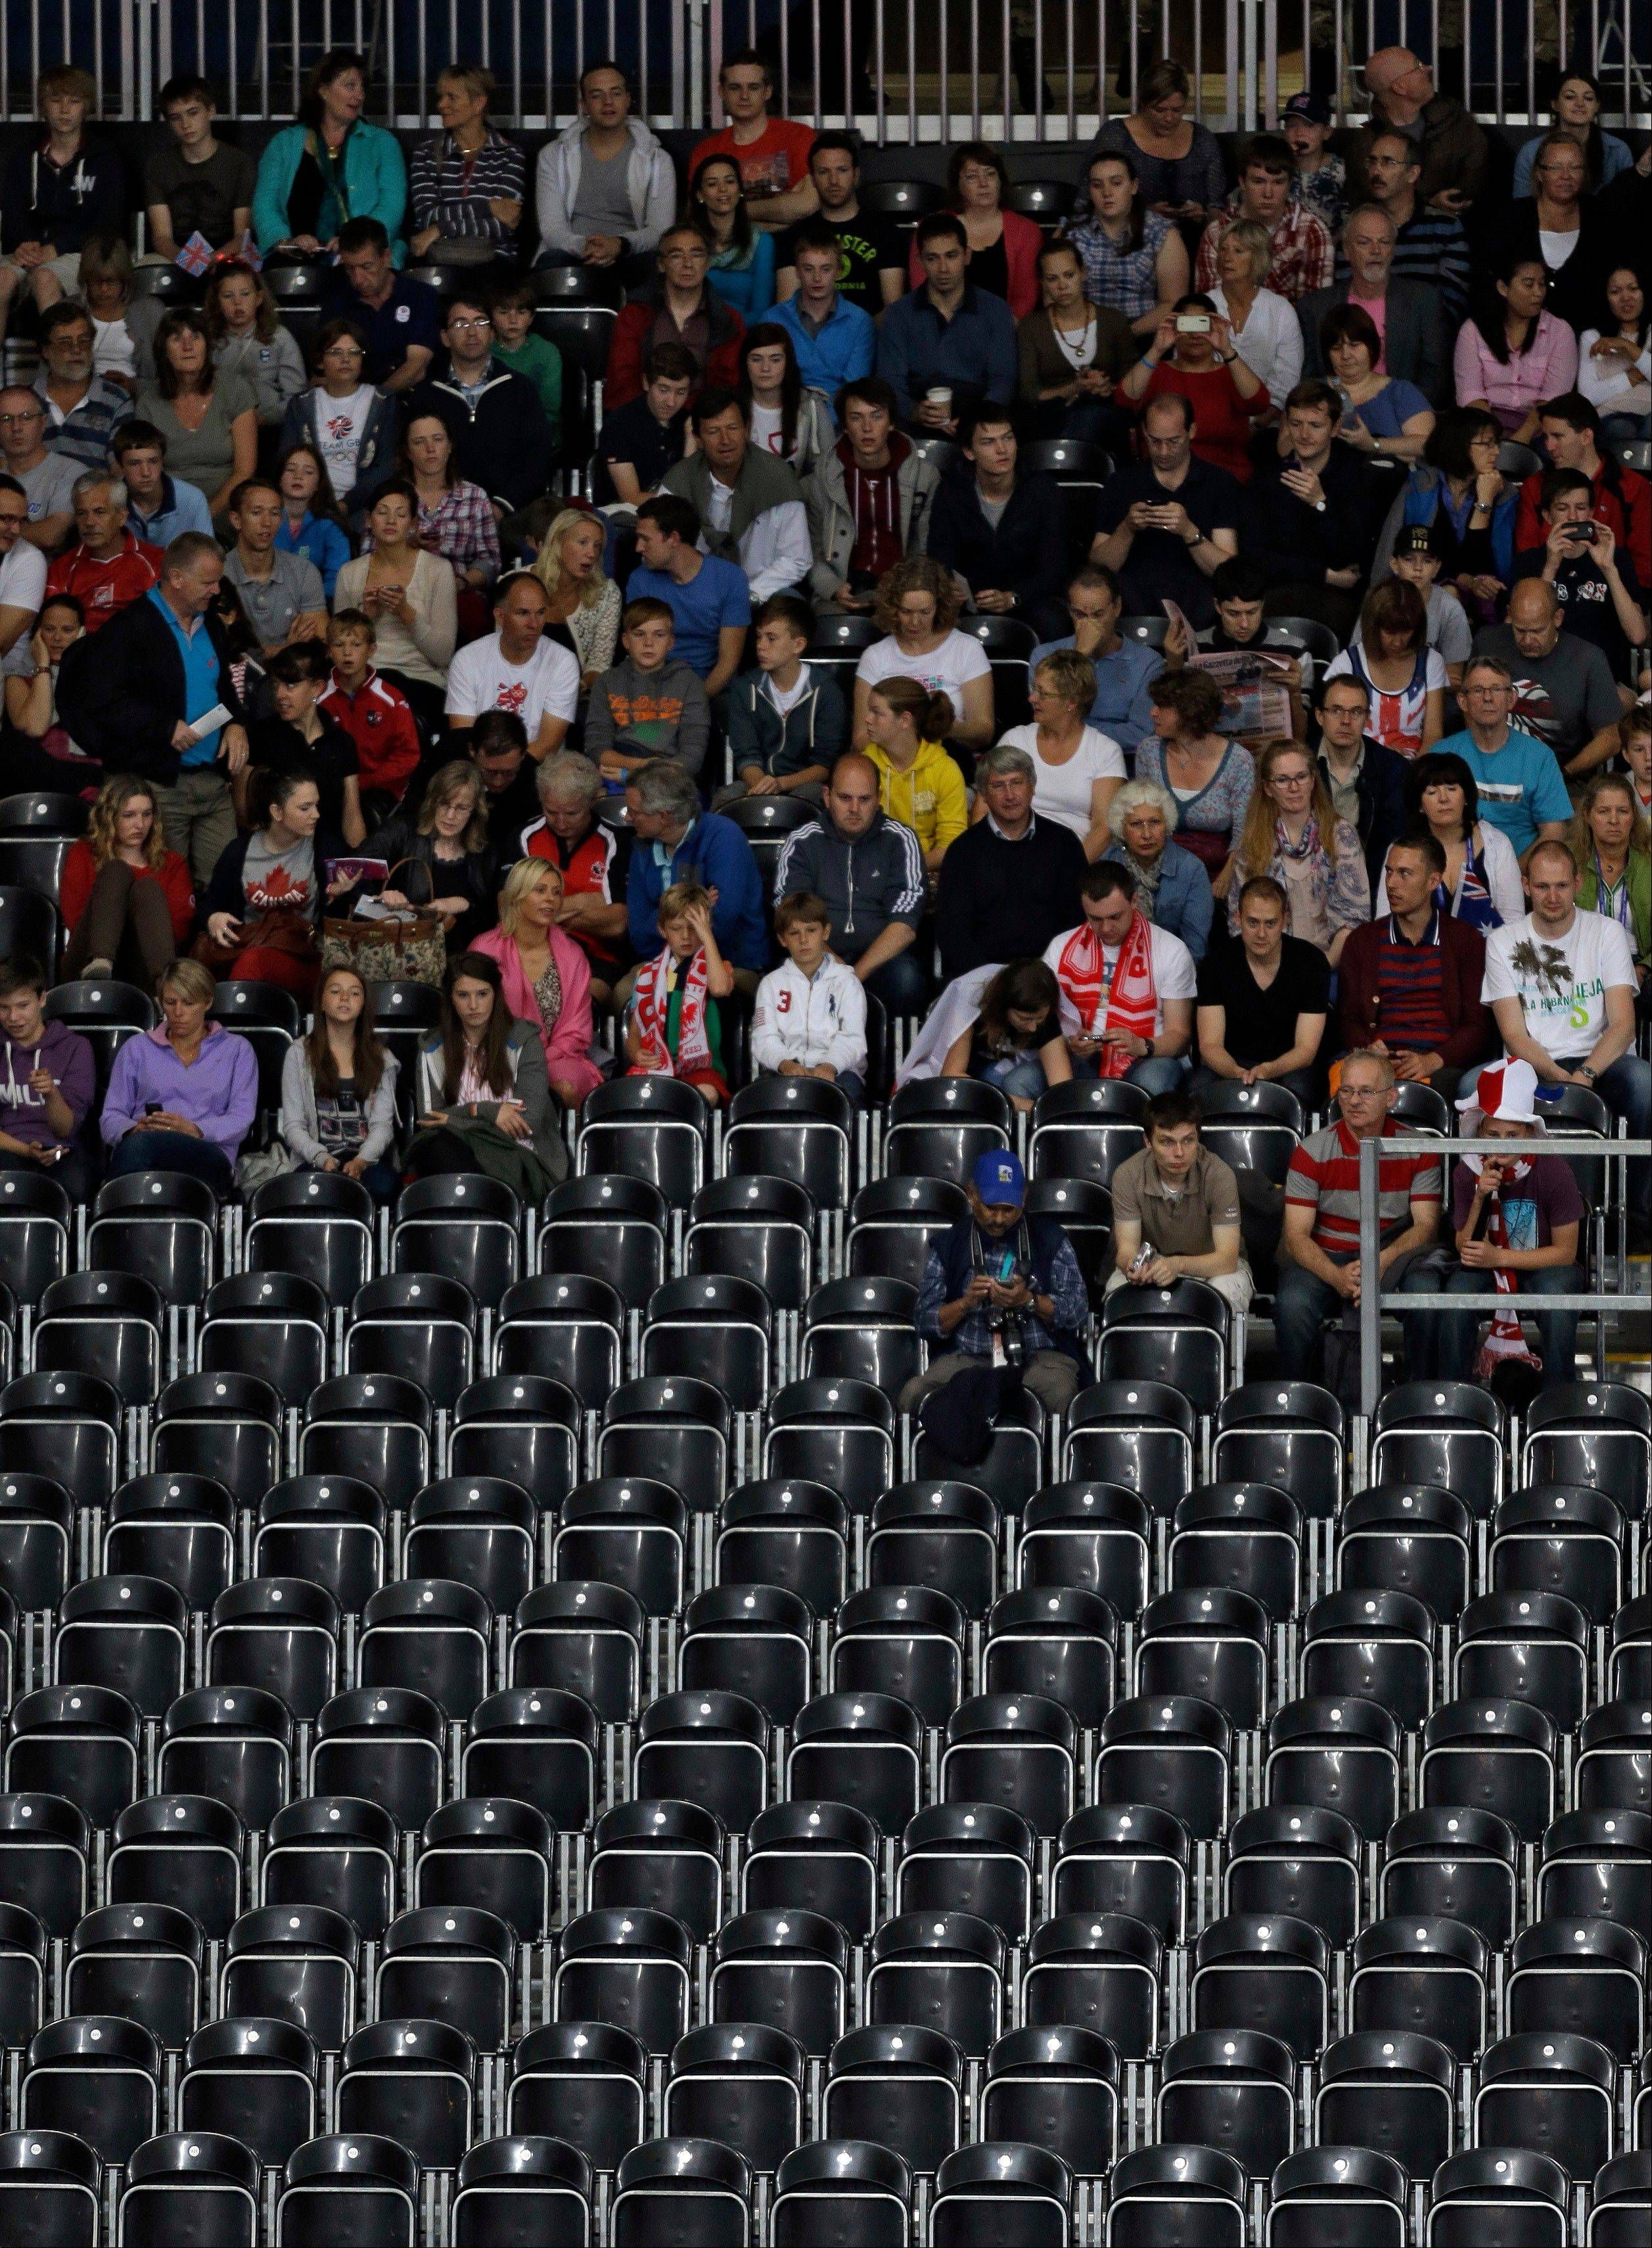 Spectators sits behind rows of empty seats during a men�s volleyball preliminary match between Tunisia and Serbia at the 2012 Summer Olympics Tuesday, July 31, 2012, in London.